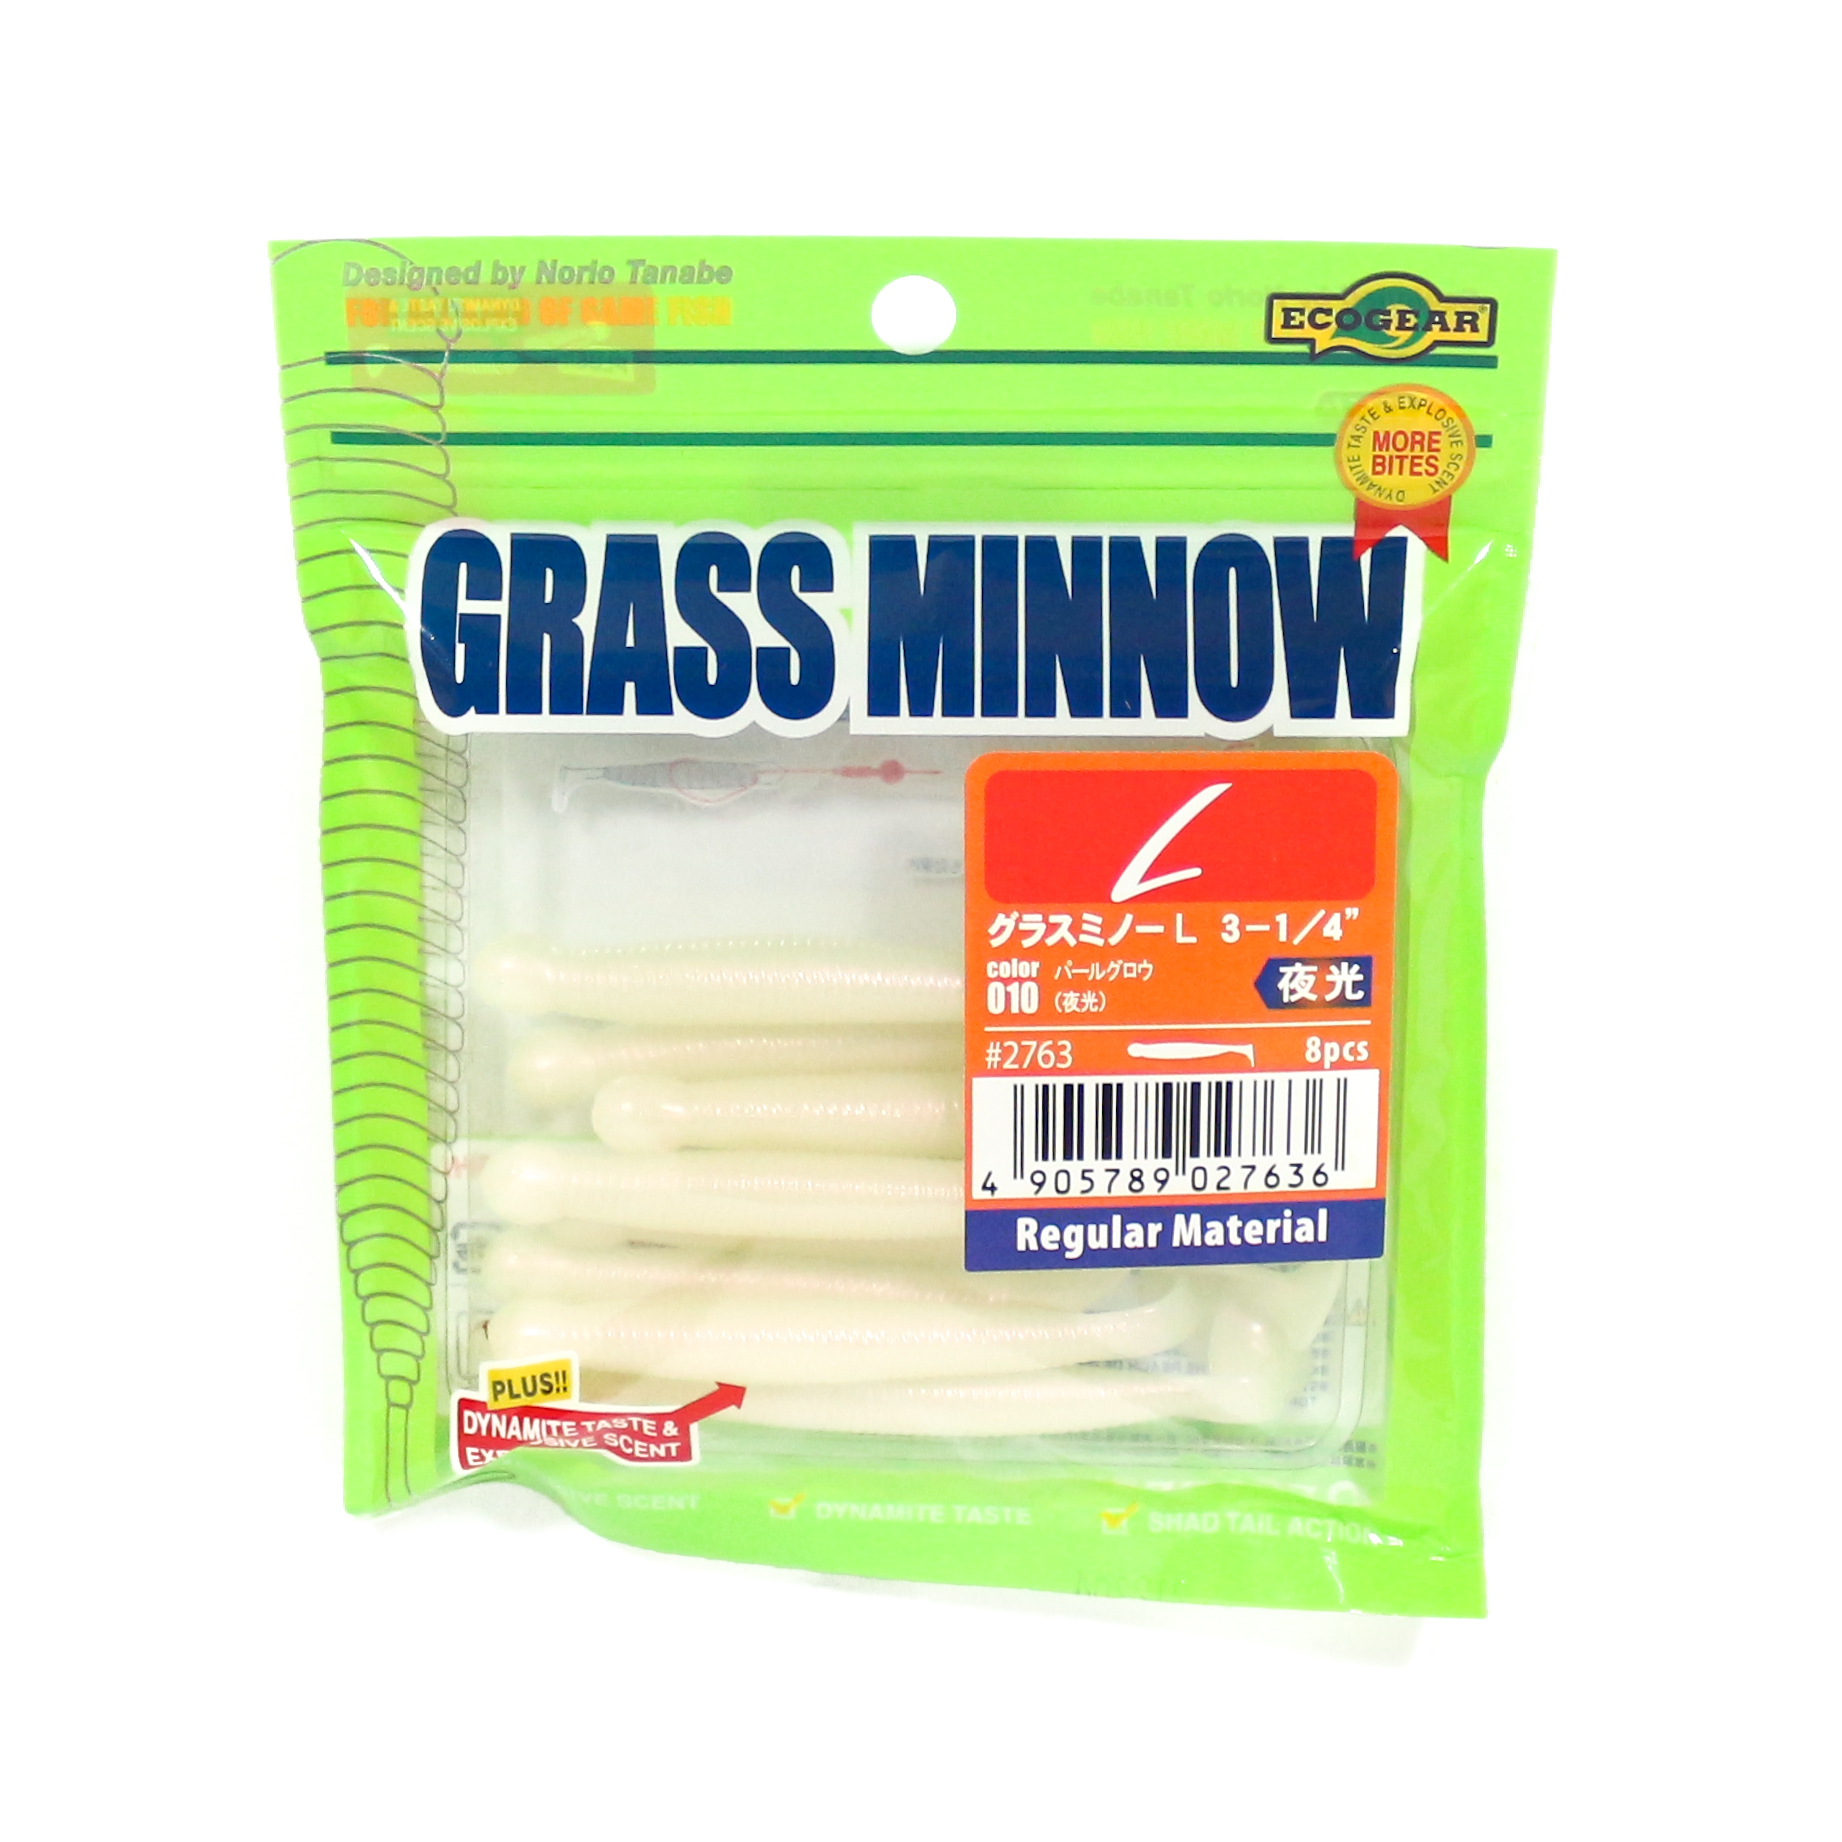 Ecogear Soft Lure Grass Minnow L 3-1/4 Inch 8 piece per pack 010 (7636)